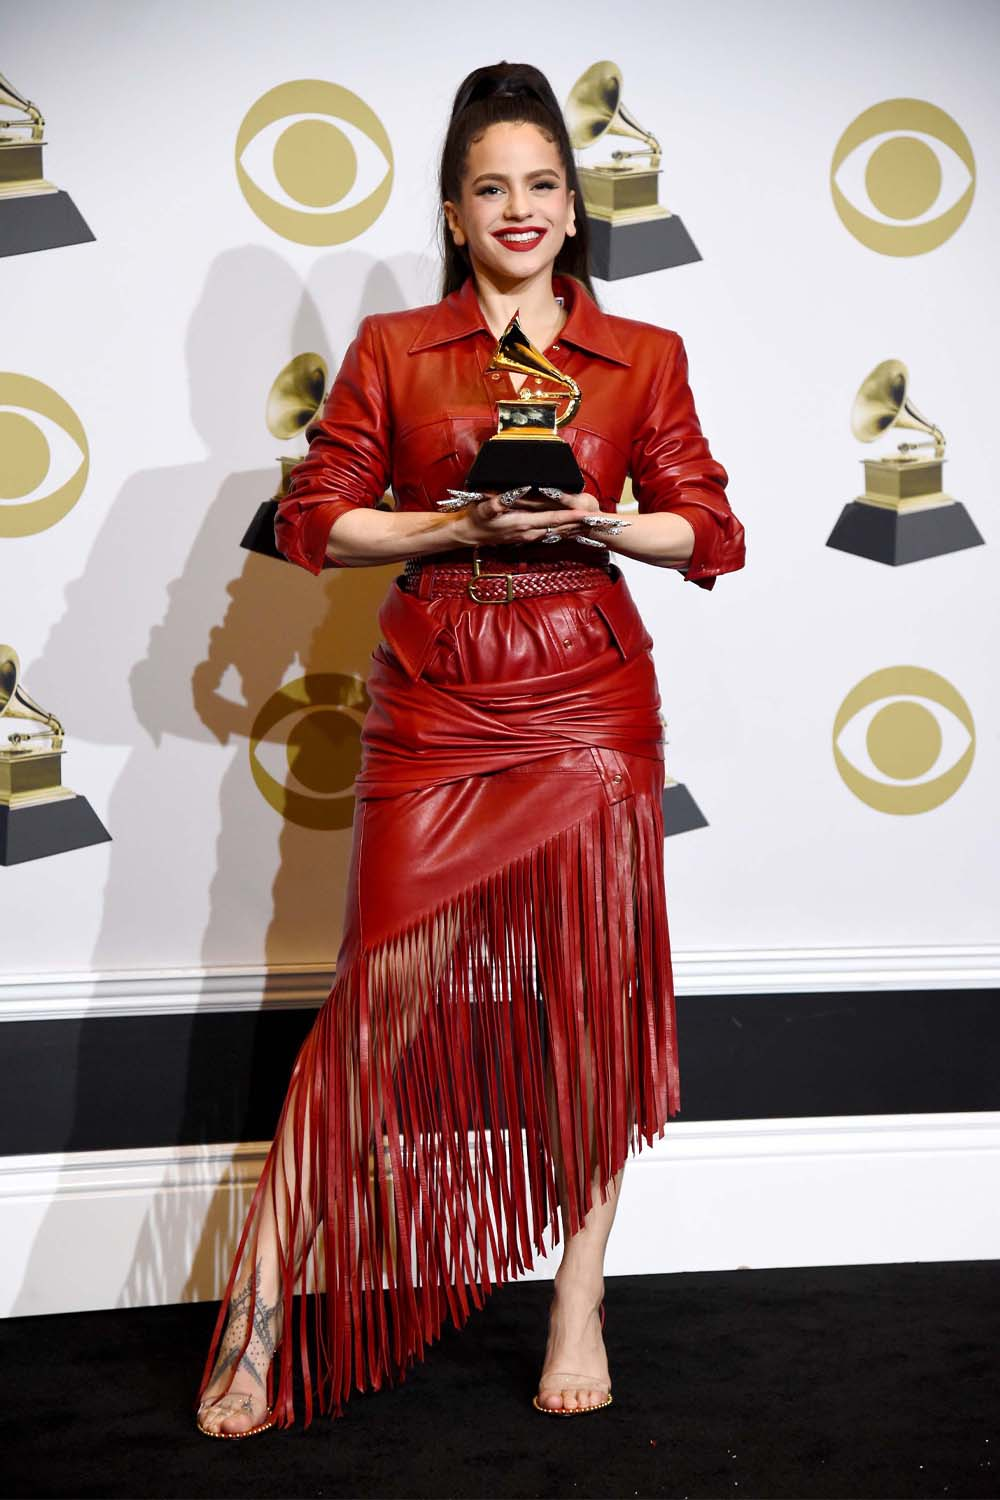 Rosalia attends 62nd Annual GRAMMY Awards at Staples Center in Los Angeles, CA